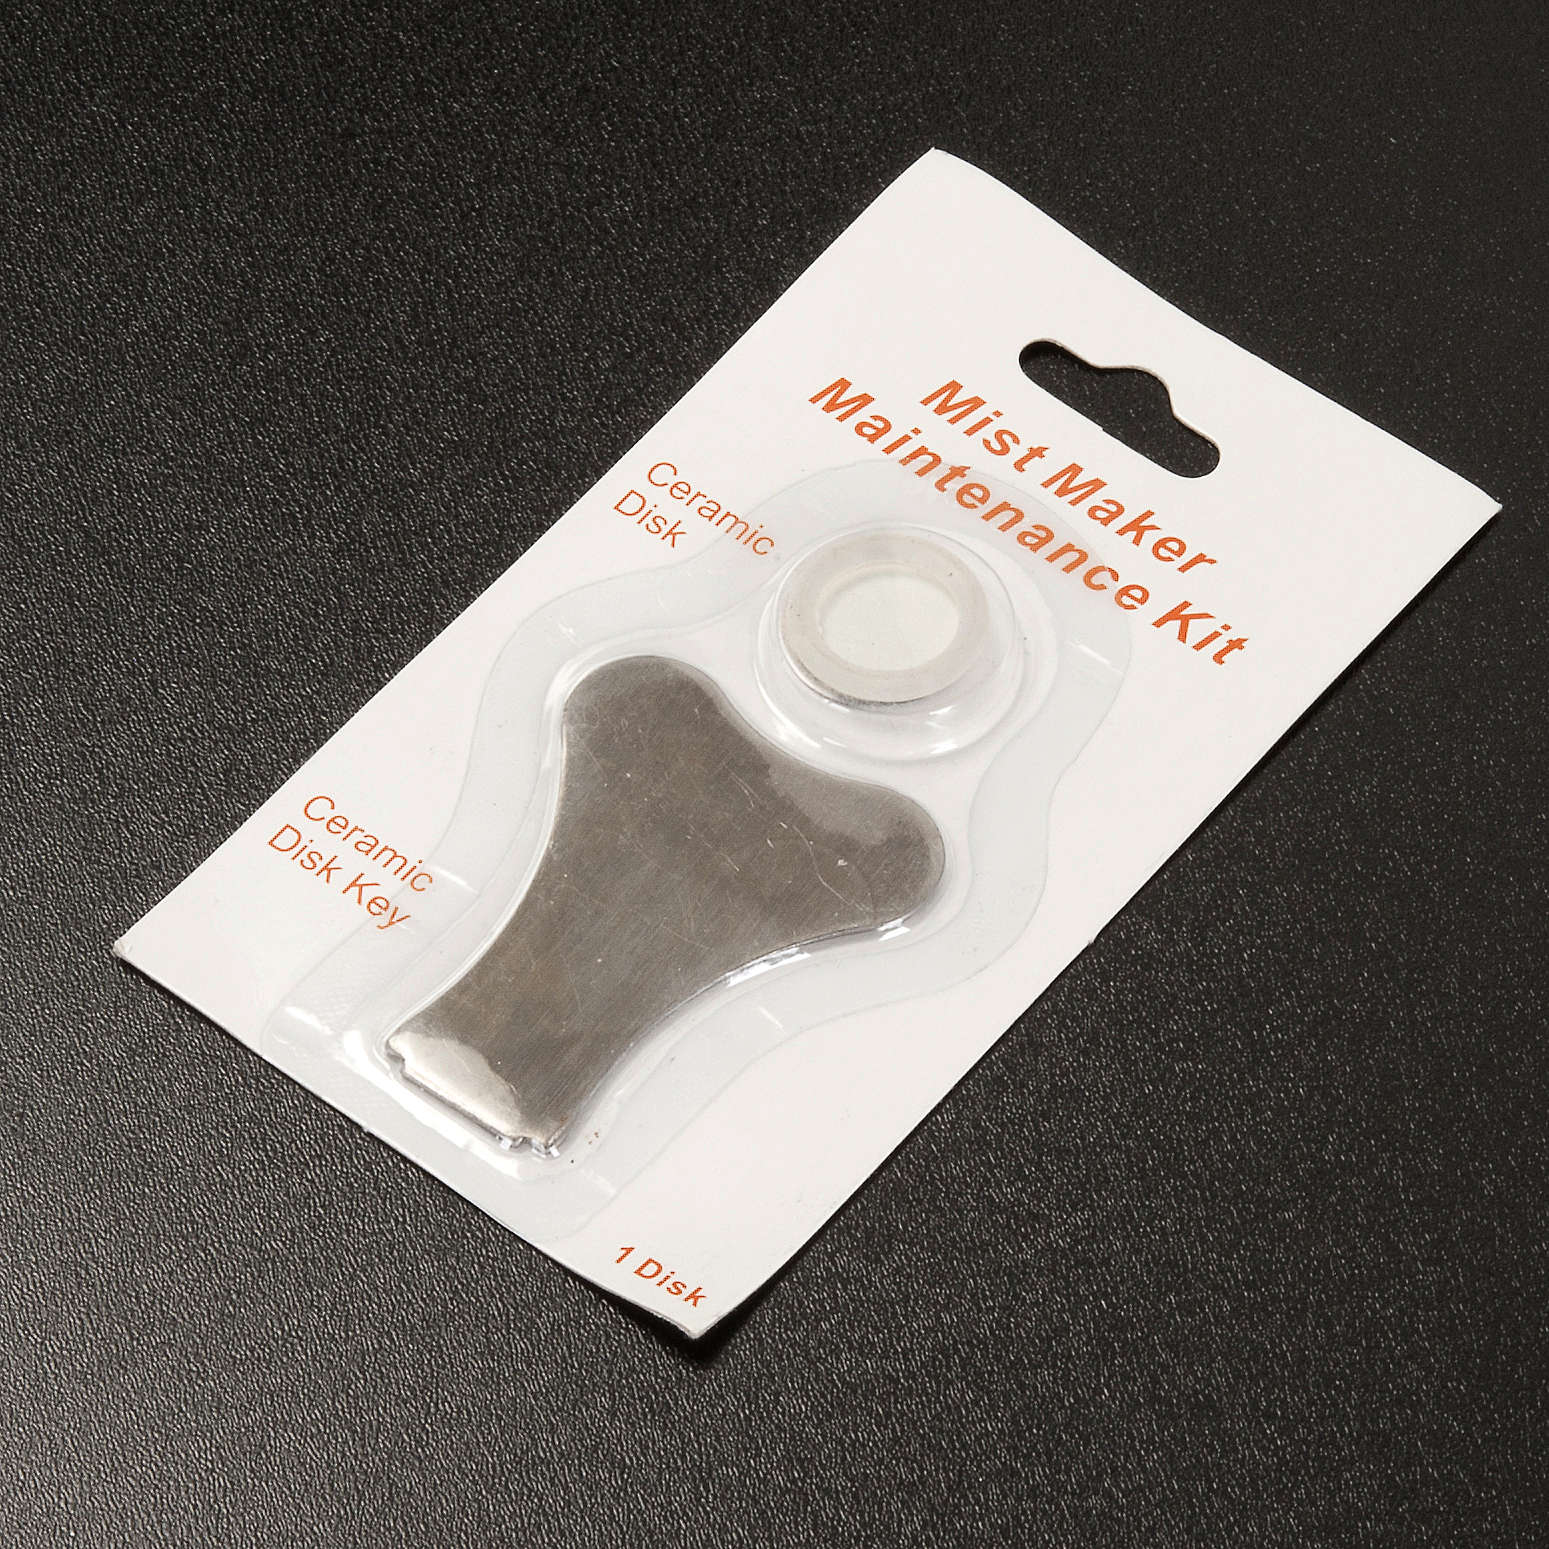 Nativity accessory, mist maker spare part, ceramic disk and key 4